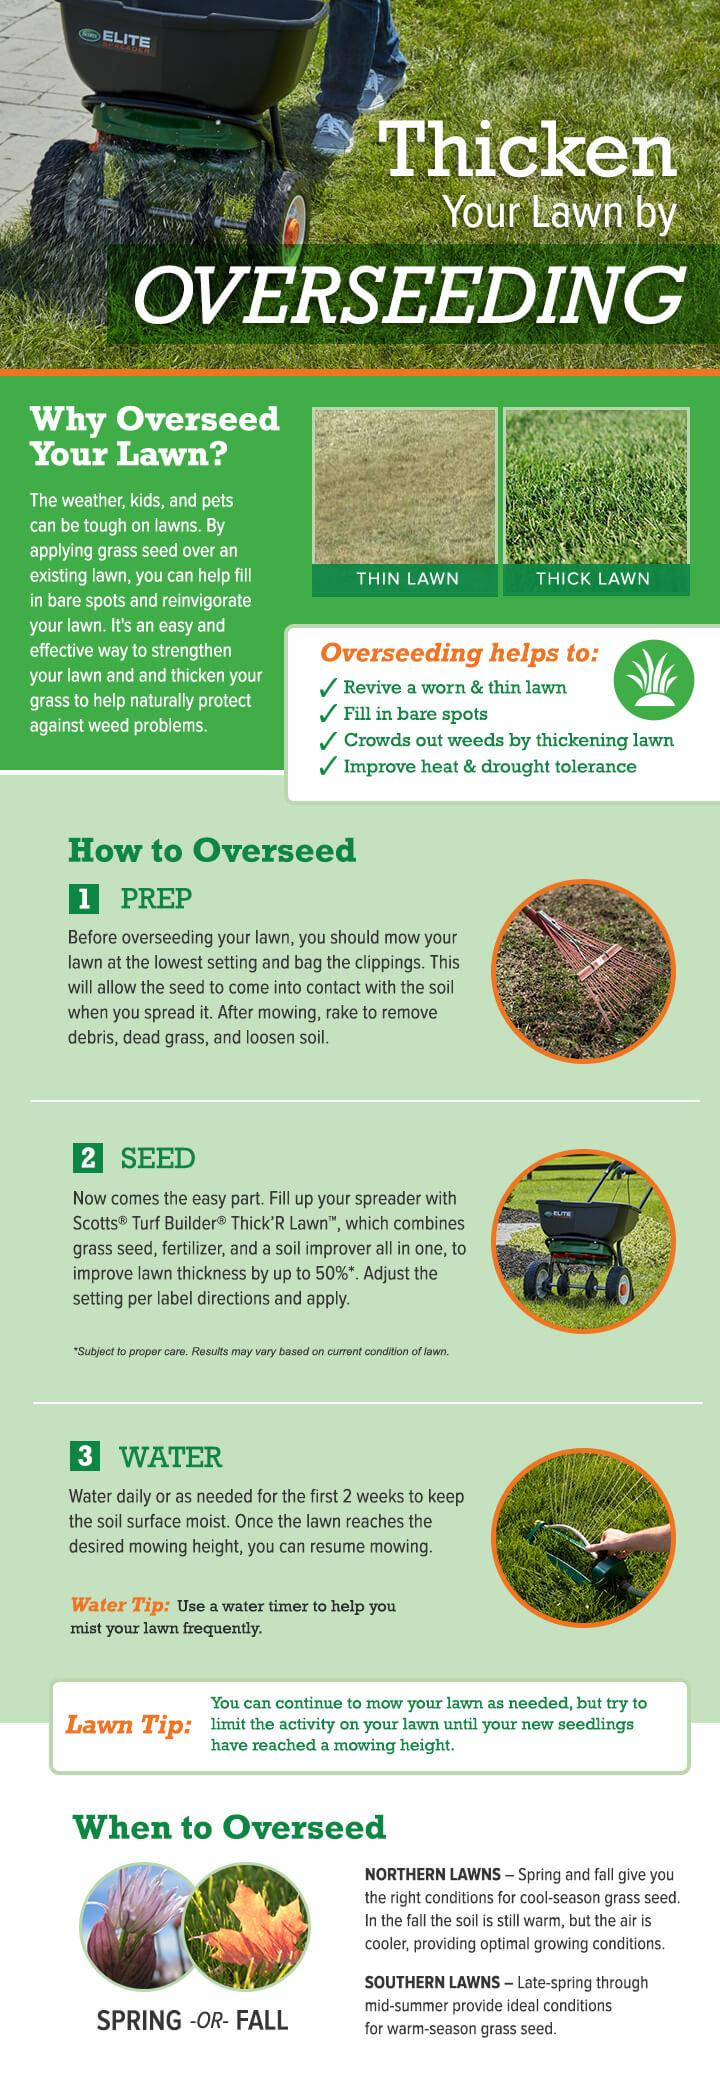 Get a thicker lawn by overseeding (infographic)